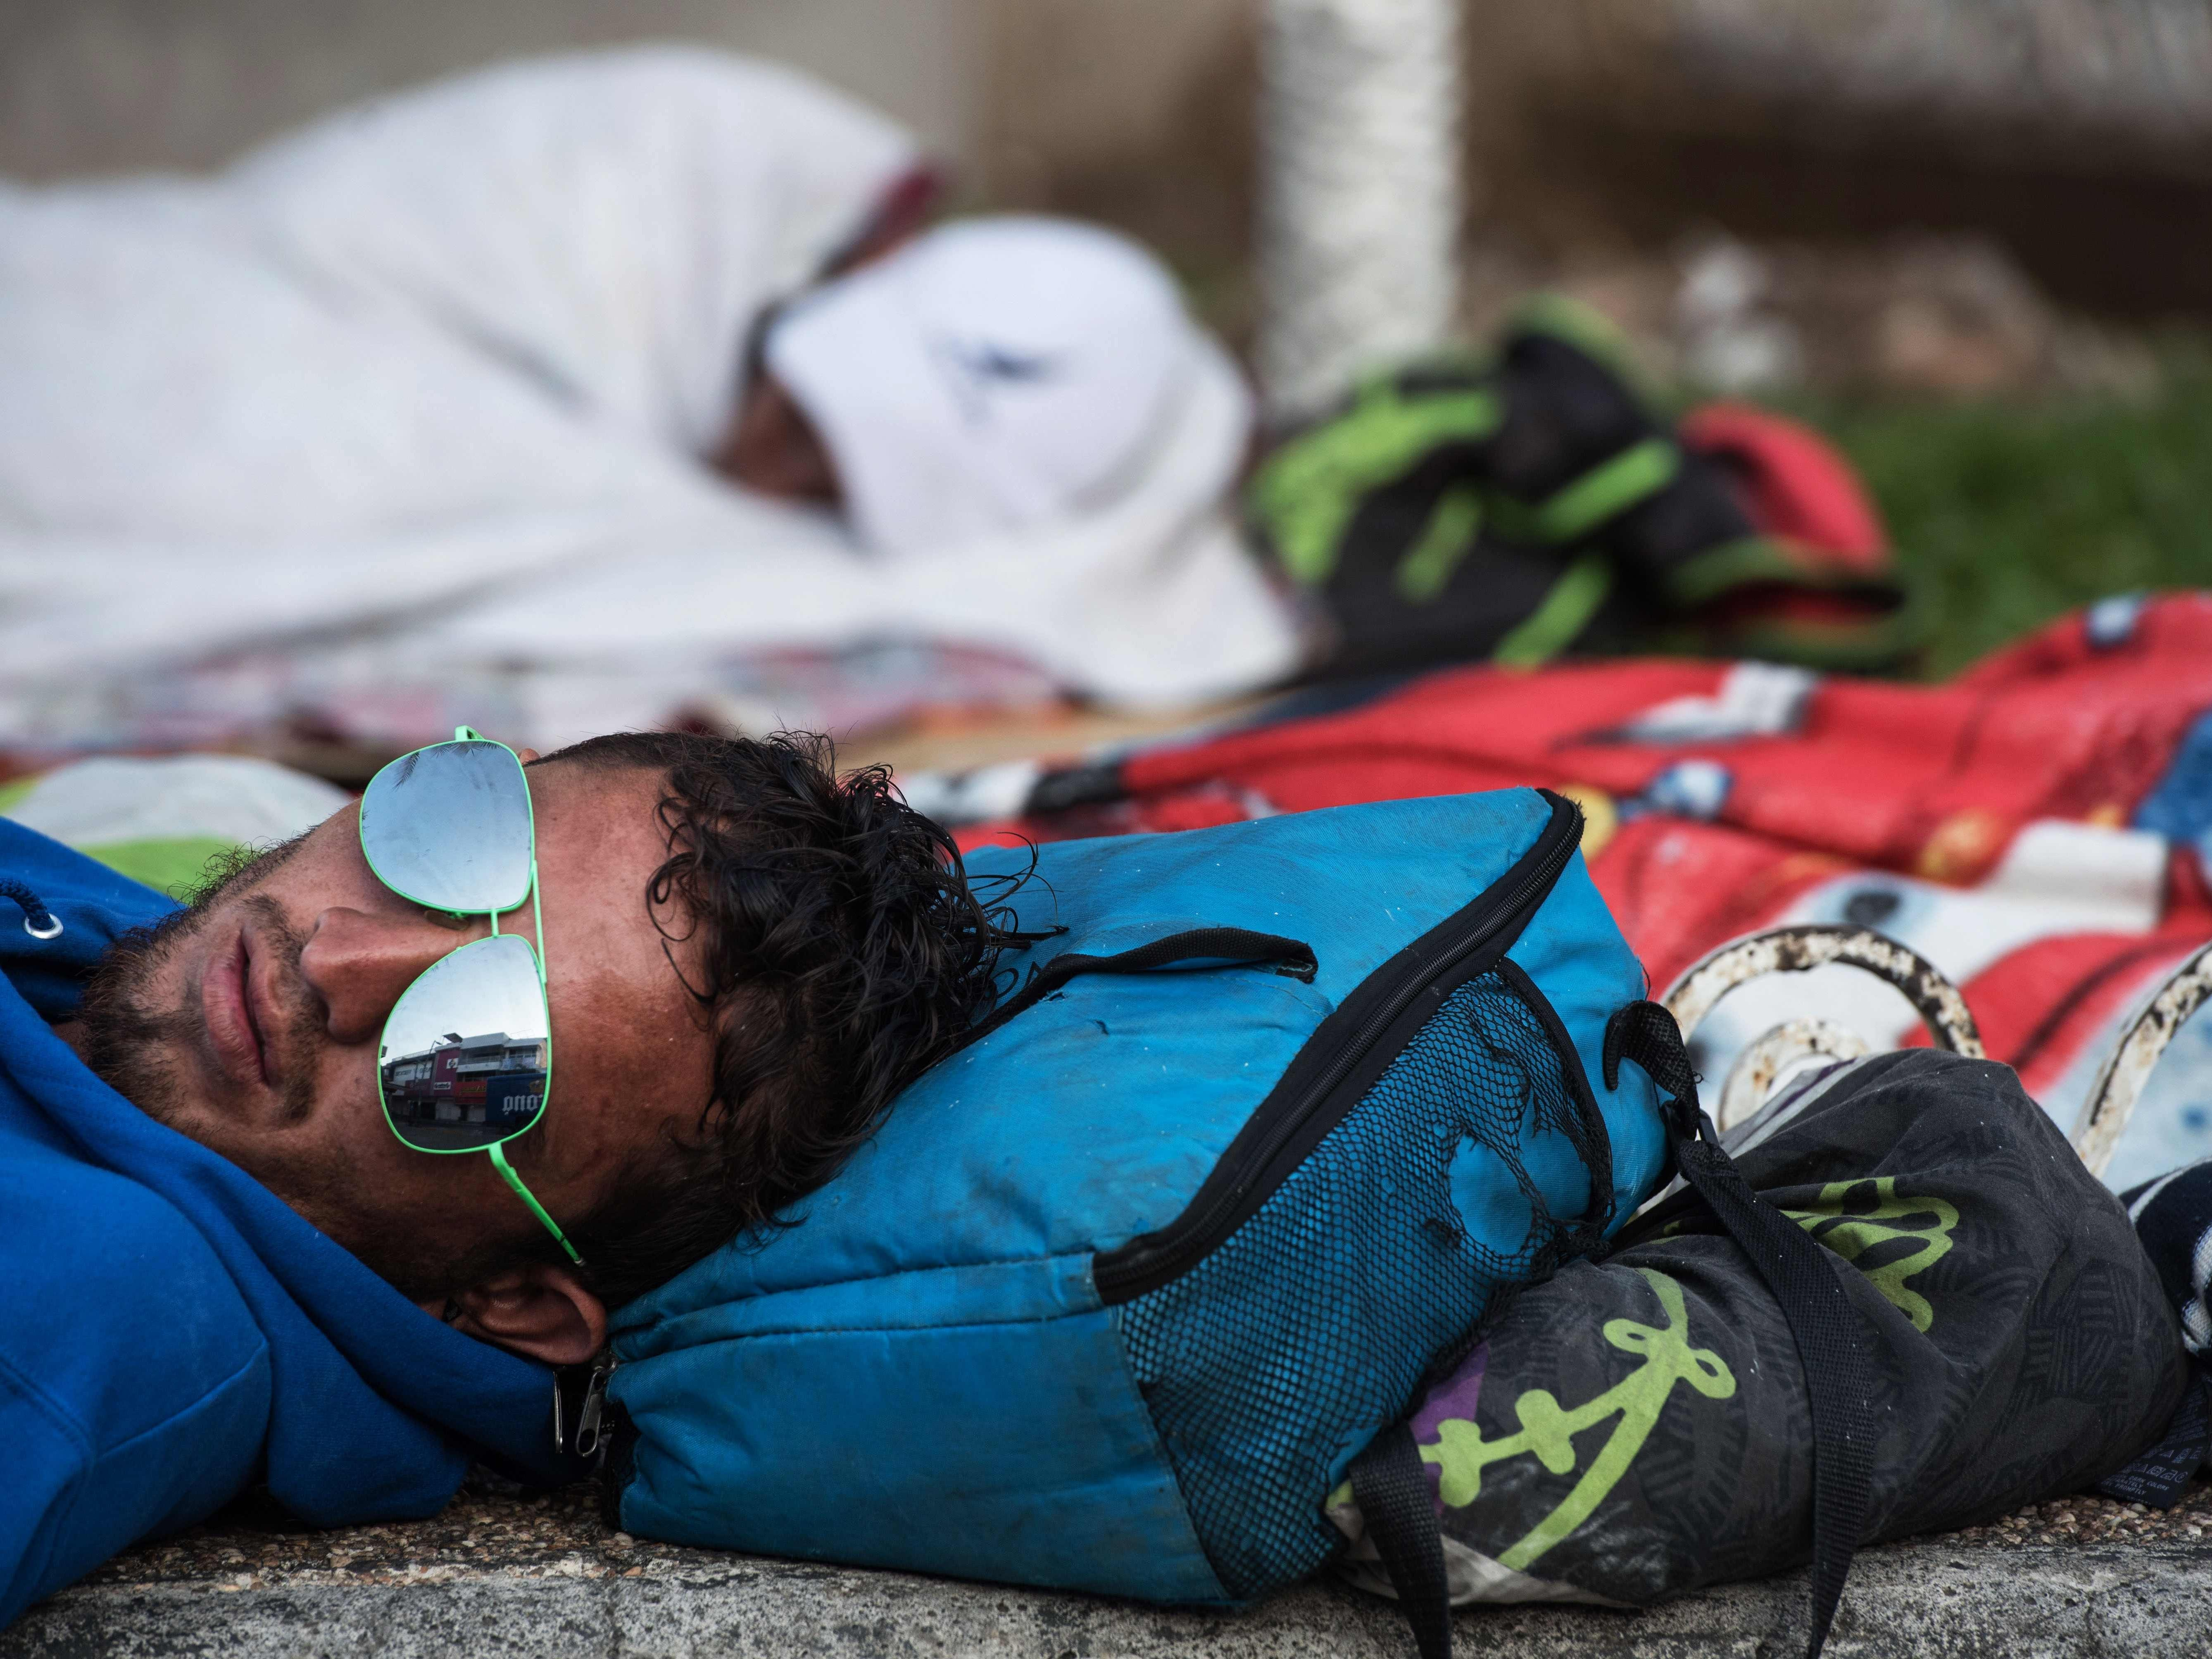 A Honduran migrant heading to the United States with a second caravan, rests during a stop in the journey in Tapachula, Chiapas state, southern Mexico on Jan. 19, 2019.  Hundreds of Central Americans entered Mexico illegally as the latest migrant caravan trying to reach the United States began crossing the Mexican-Guatemalan border en masse Friday.